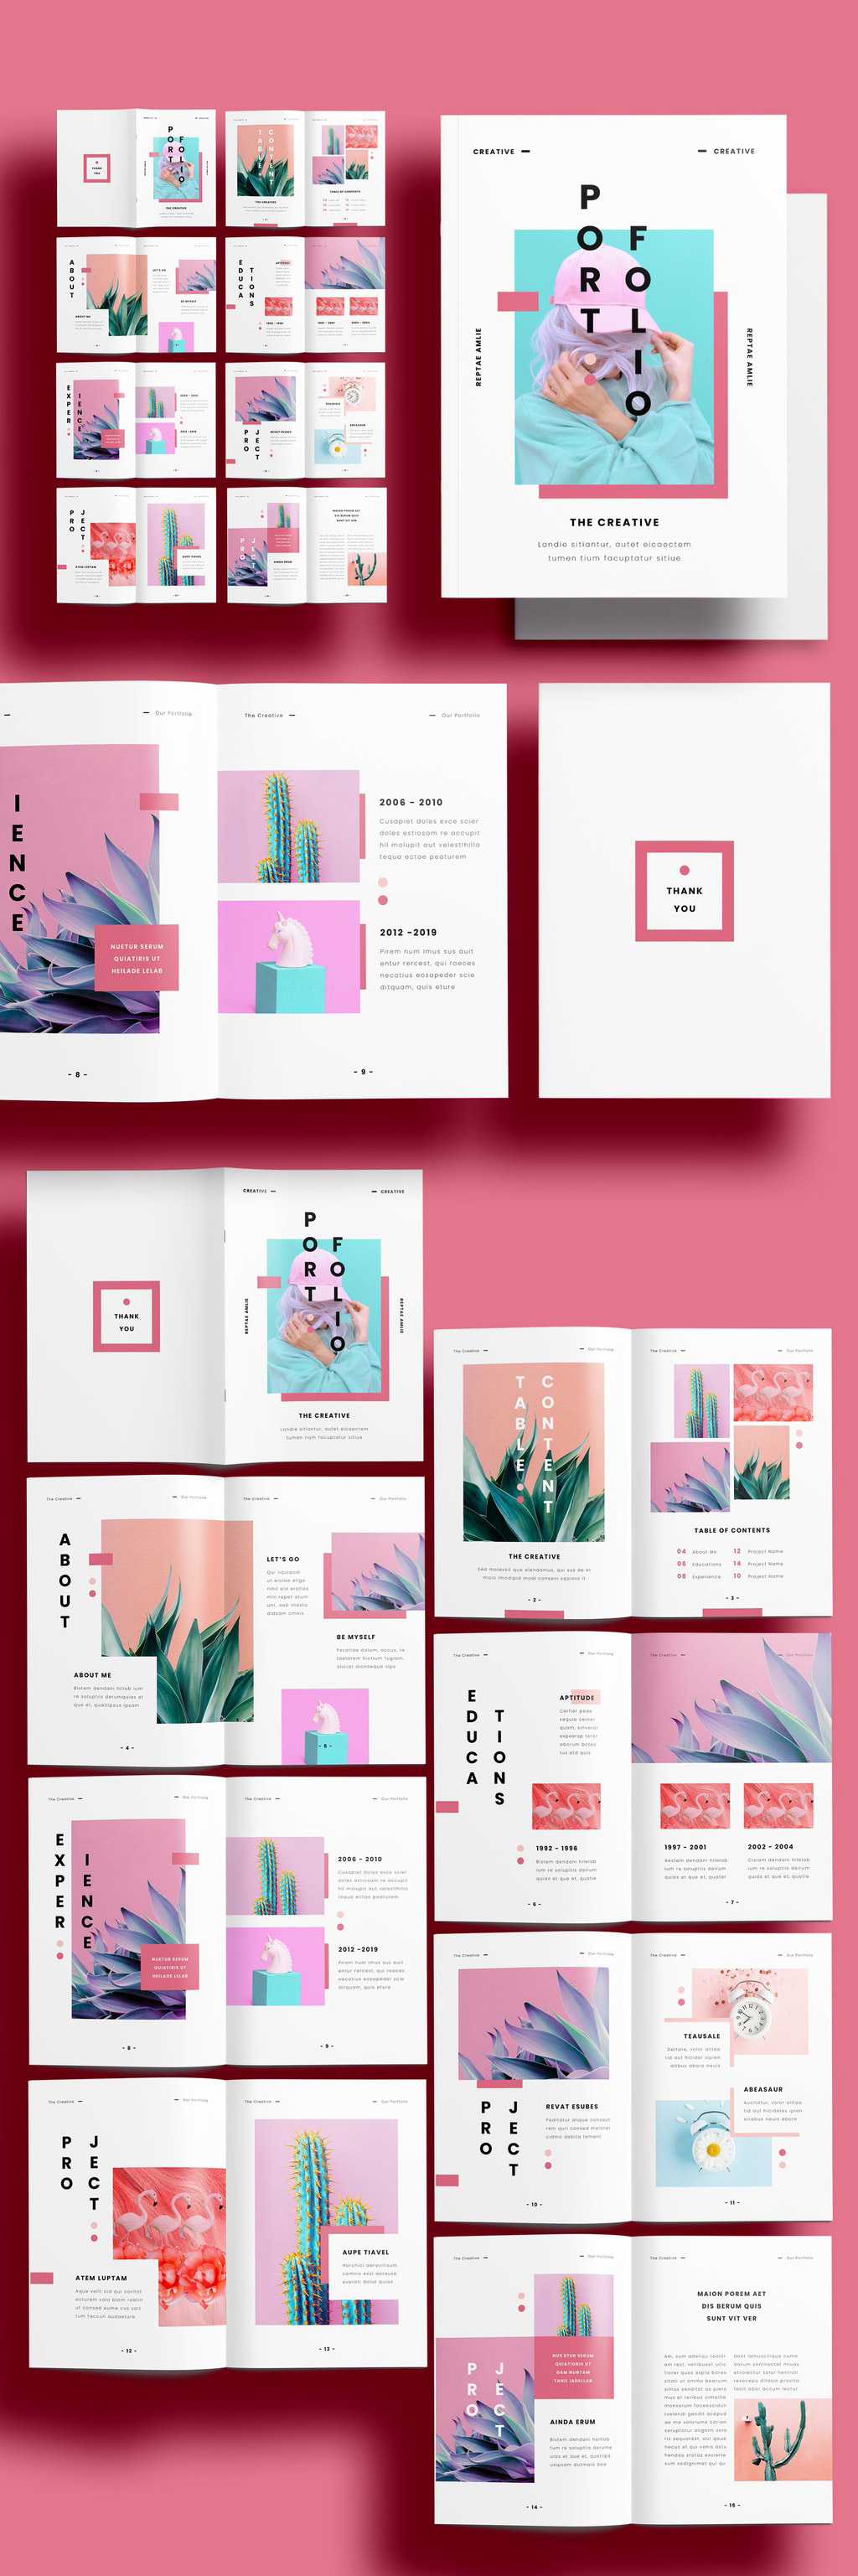 A Unique Portfolio Template for Adobe InDesign